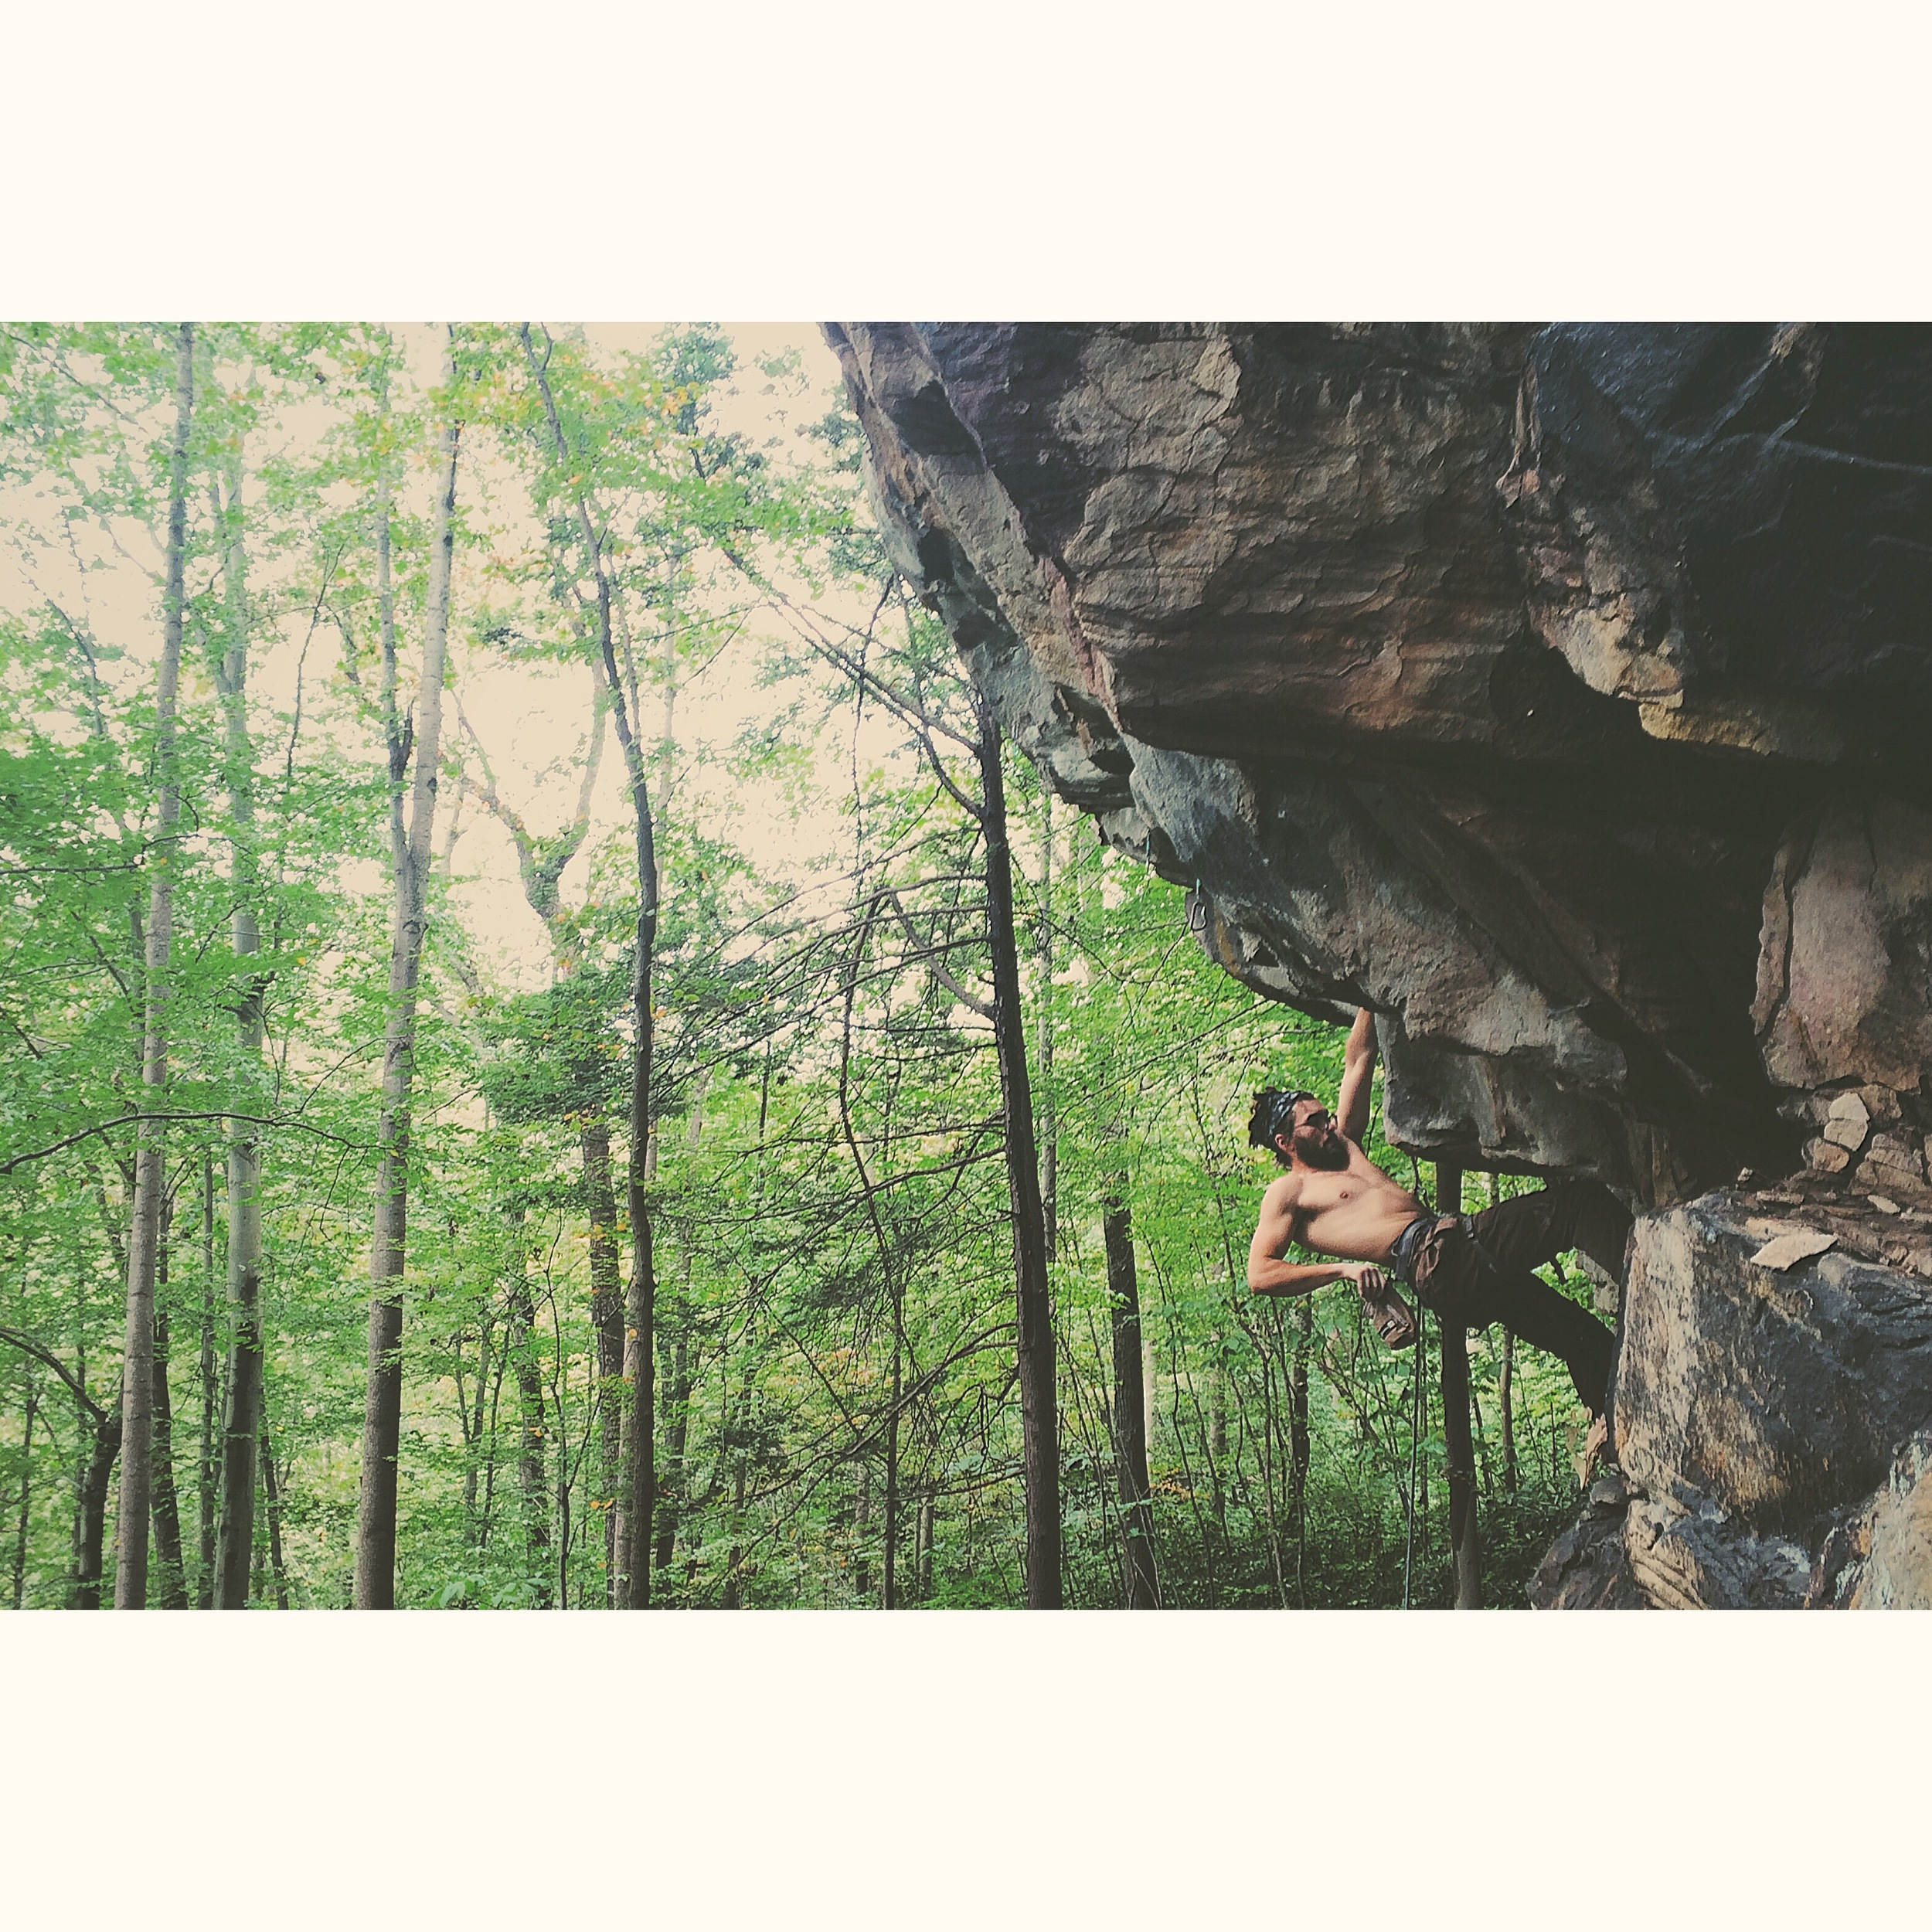 Will on Psychowrangler (12a) at Cottontop!